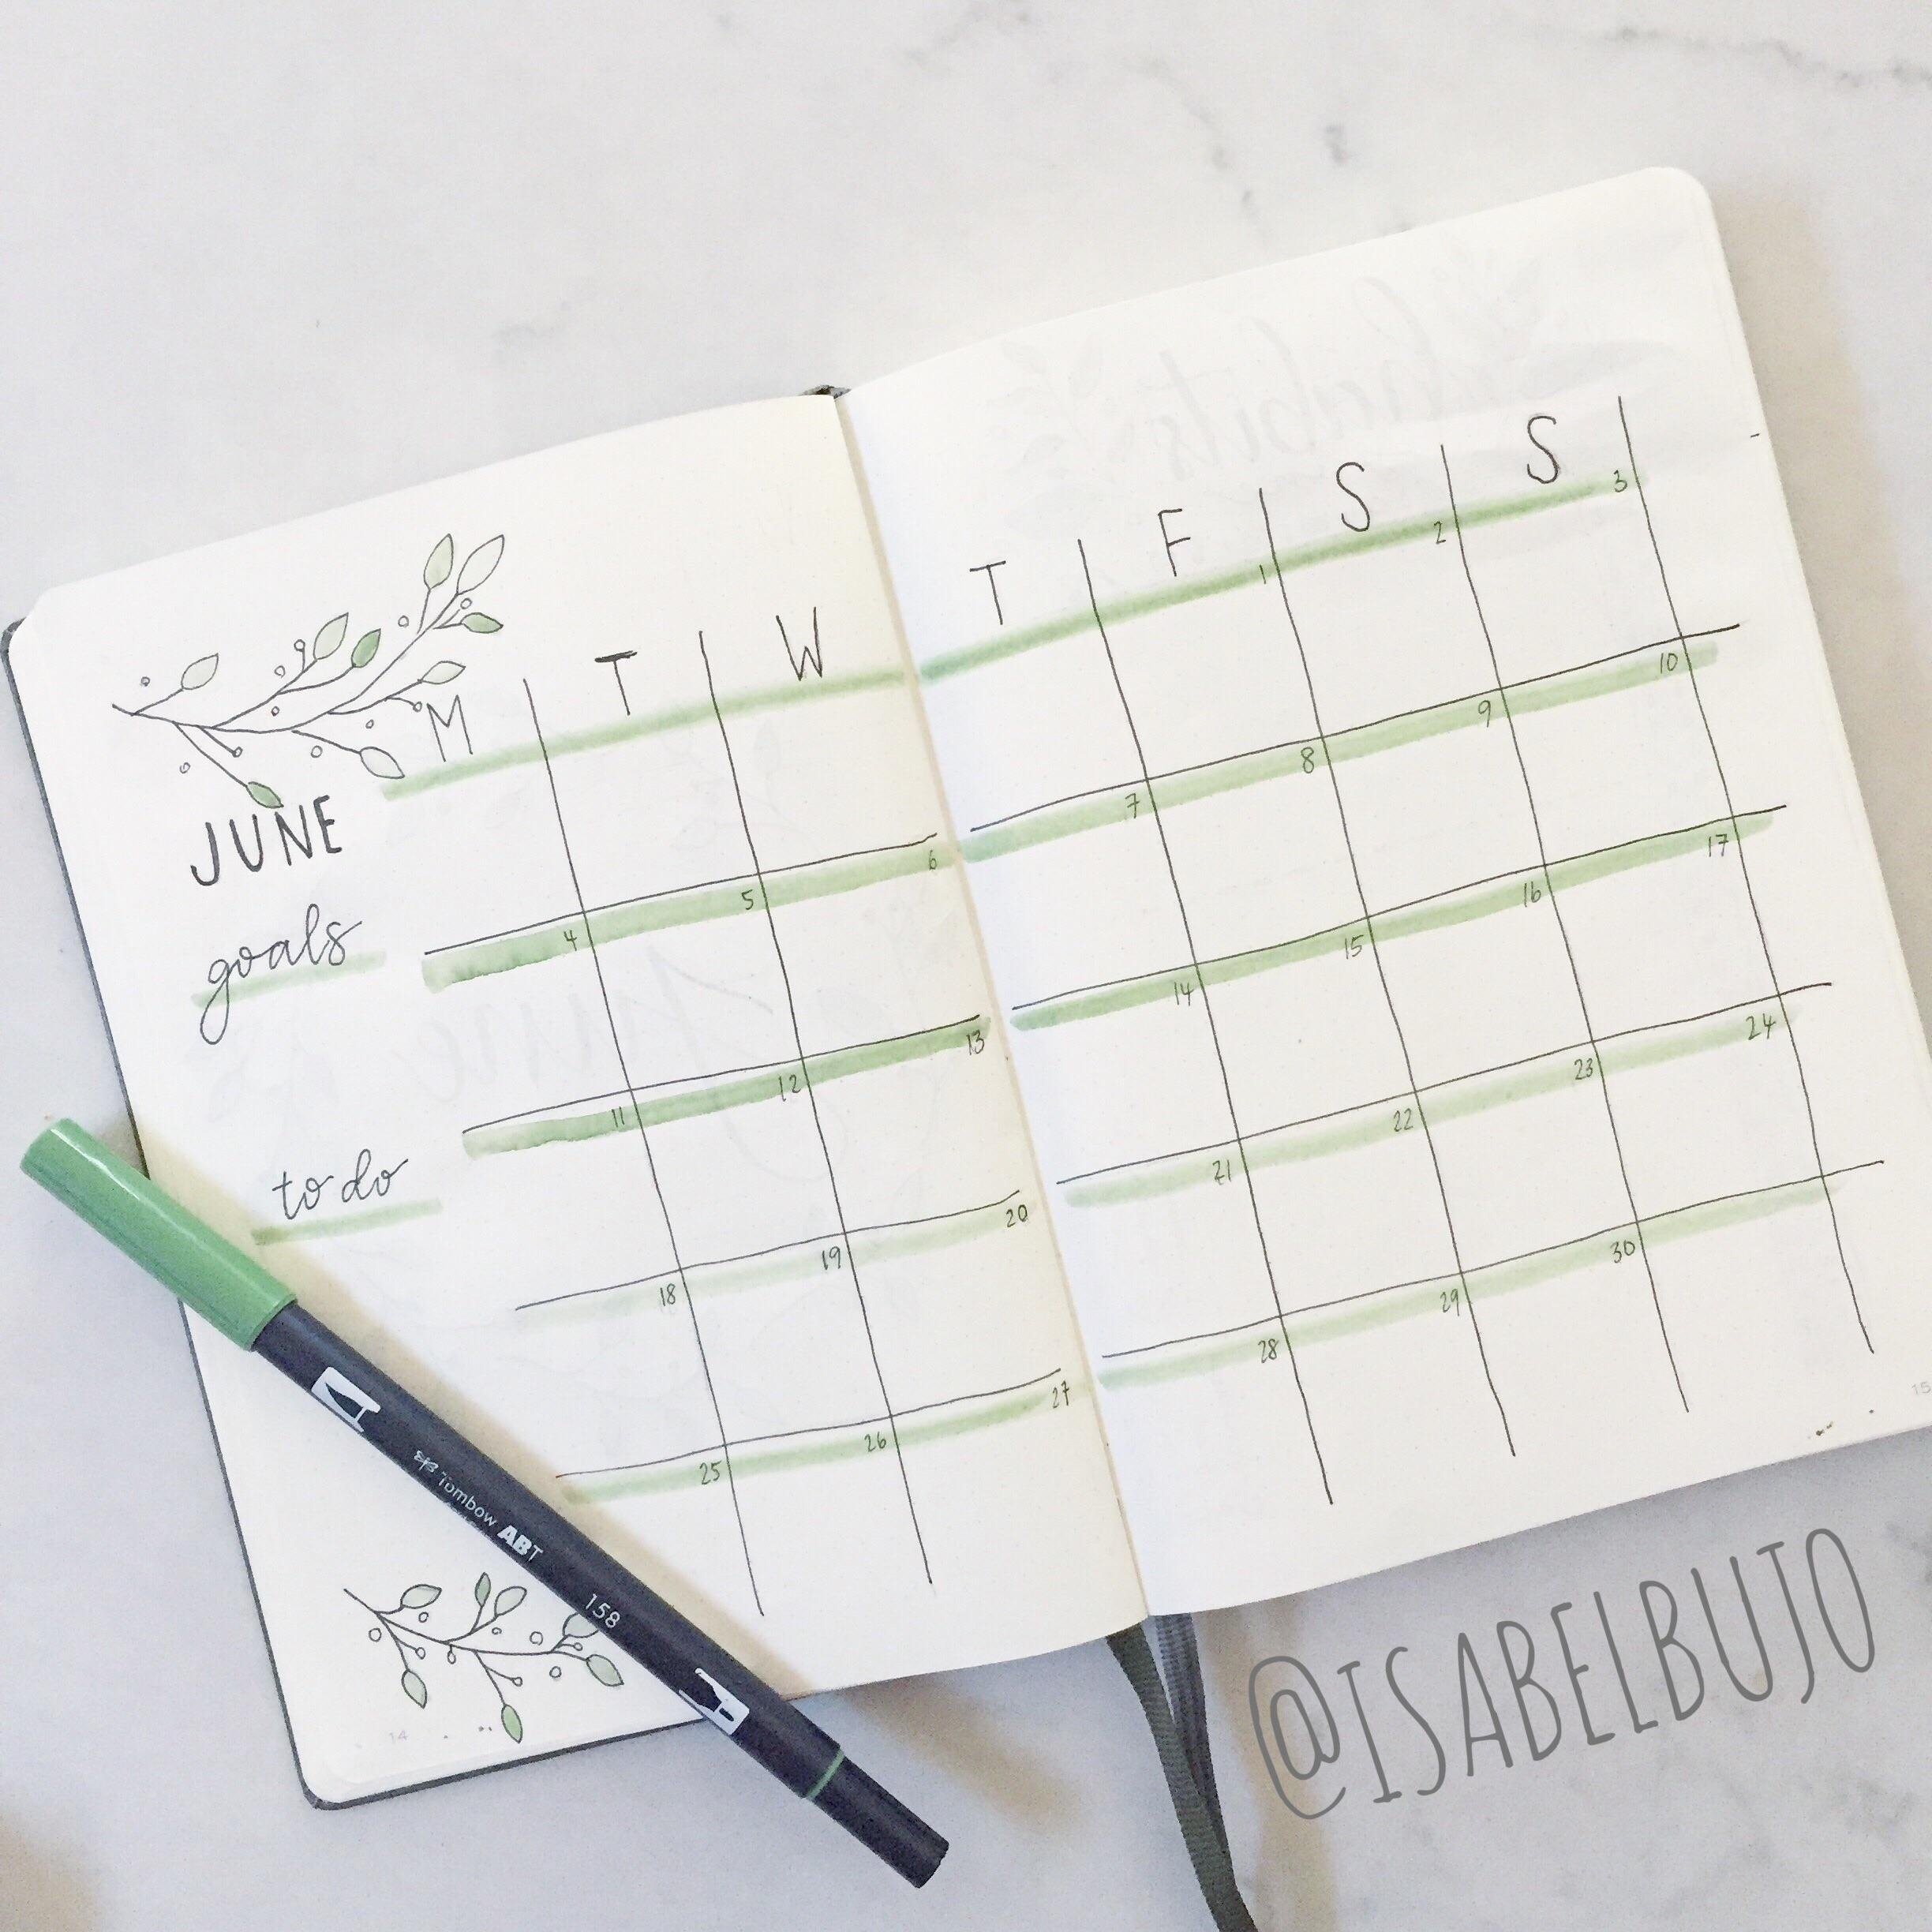 My Olive Themed June Monthly Calendar! : Bulletjournal Monthly Calendar Bullet Journal